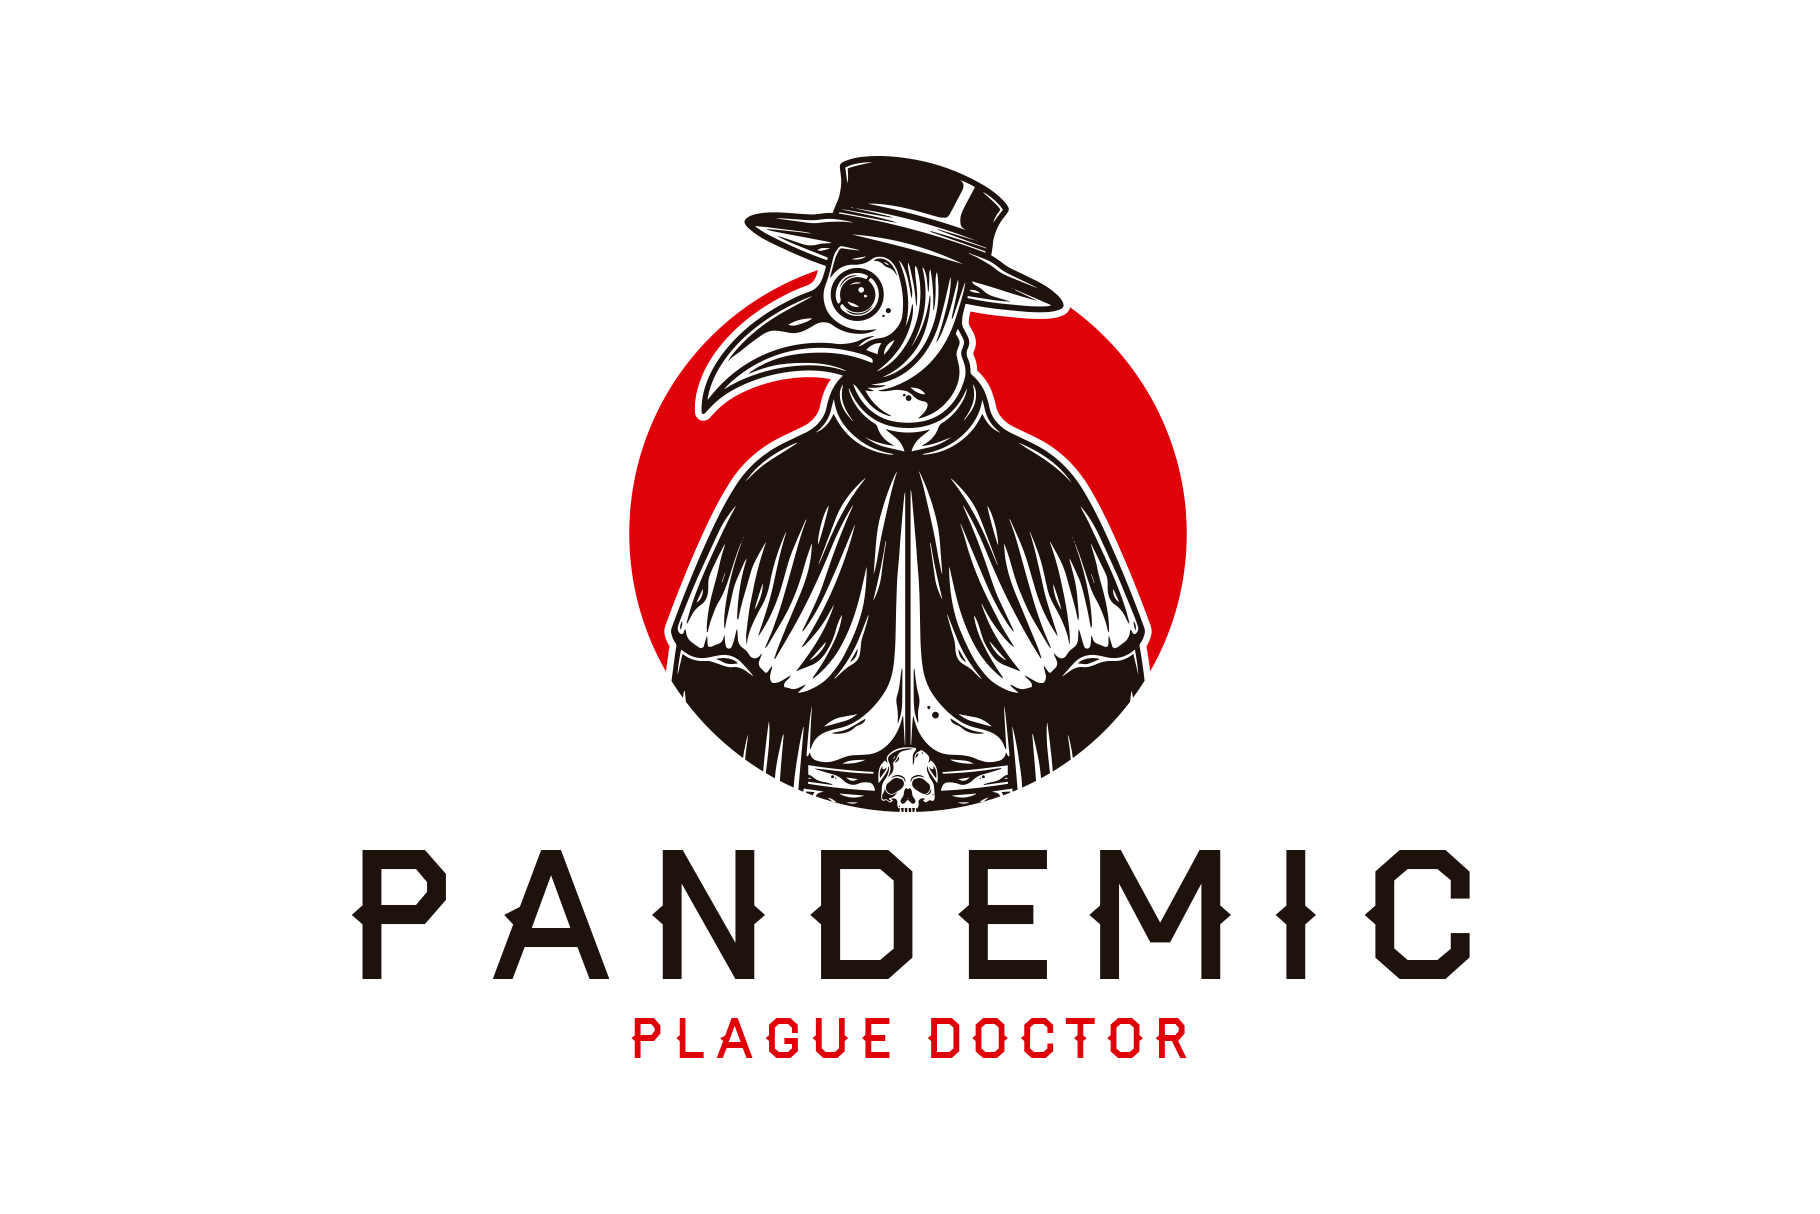 Download Free Pandemic Plague Doctor Logo Template Graphic By Vectorwithin for Cricut Explore, Silhouette and other cutting machines.